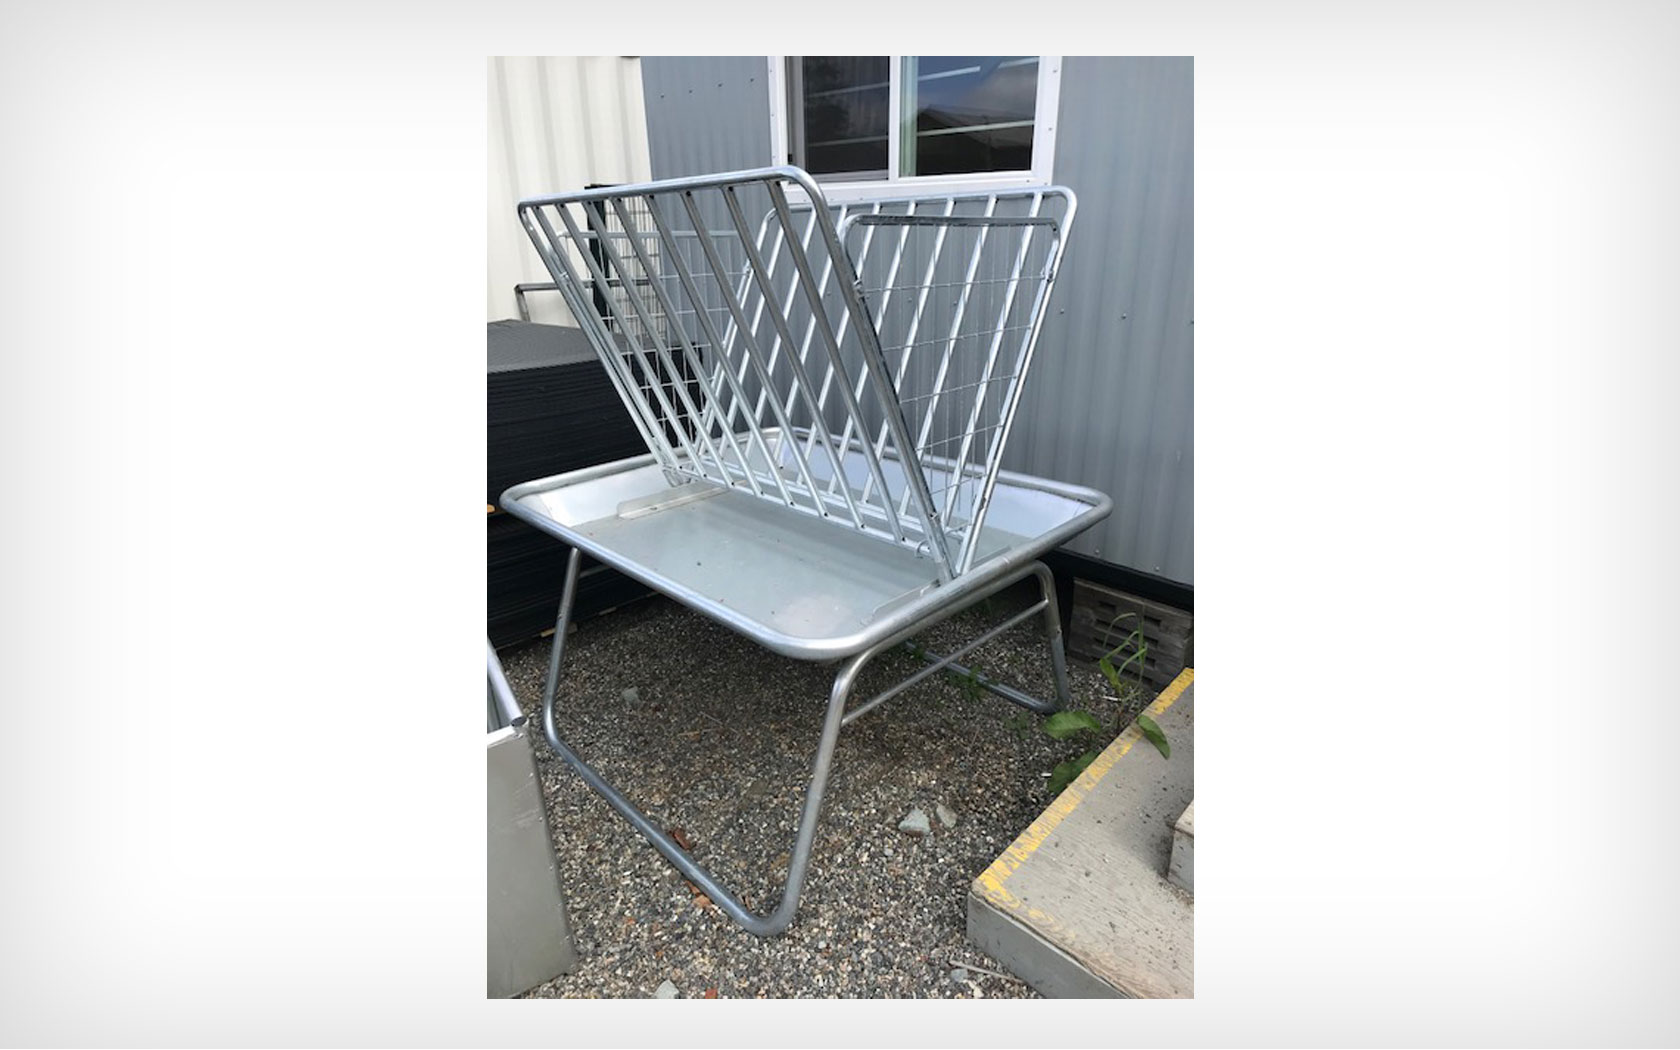 5′ Horse Feeder with Tray